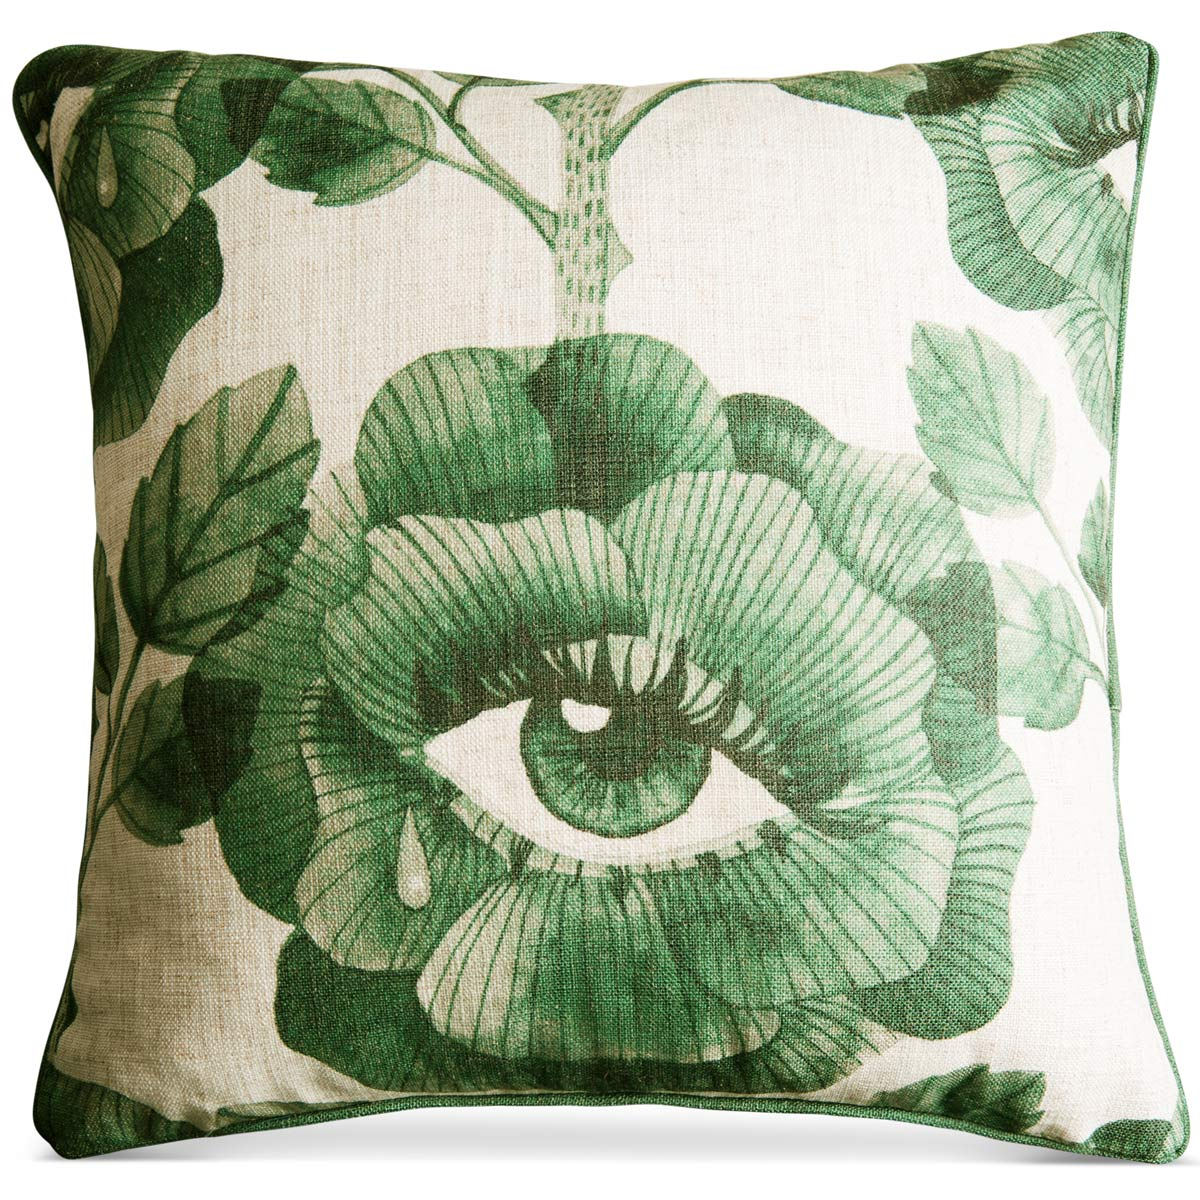 Floral Eyes Pillow in Hunter Green - ModShop1.com